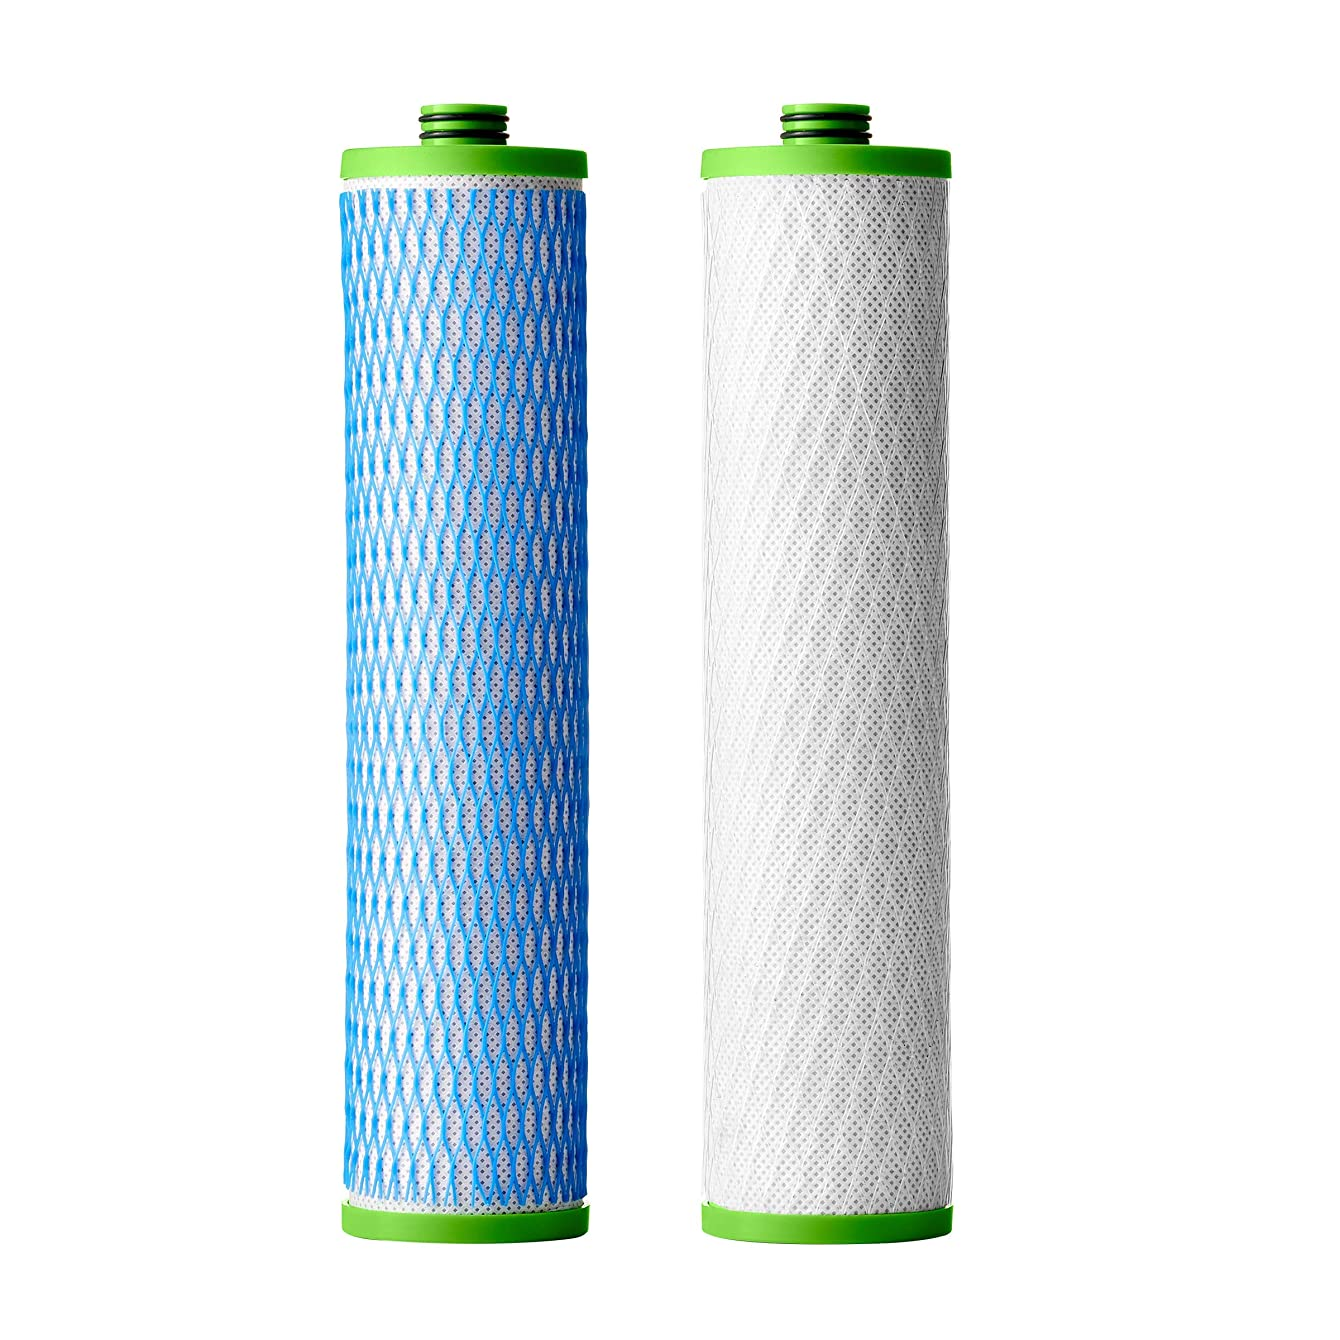 AO Smith Carbon & Claryum Filter Replacements